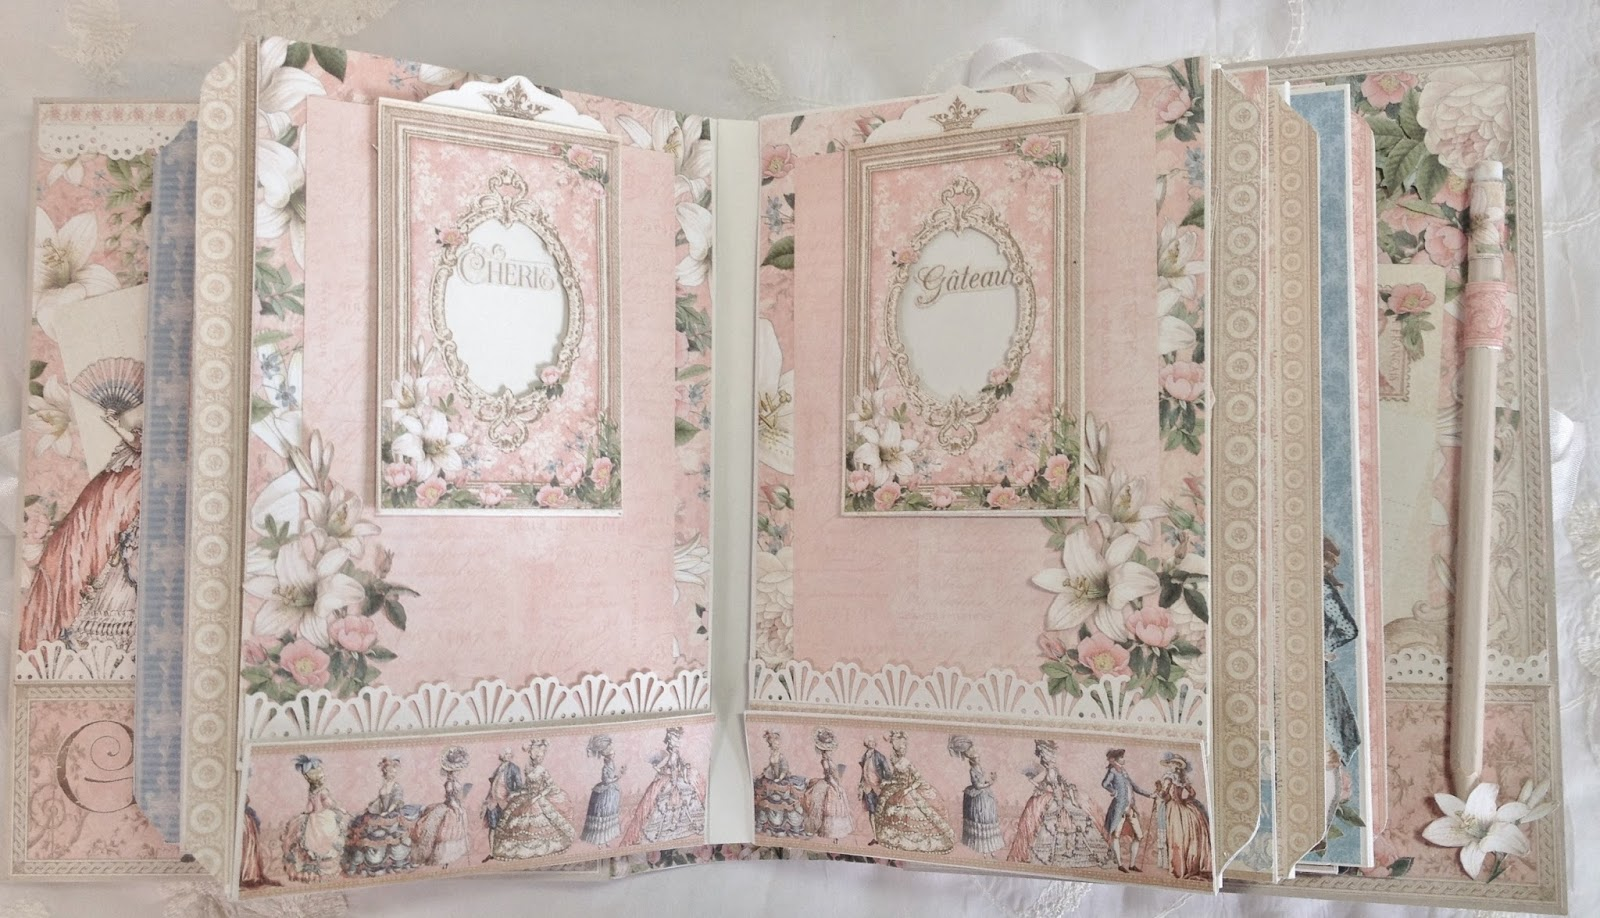 Scrapbook ideas abc album - Here Is A Lot Of Room For Journaling And Photos